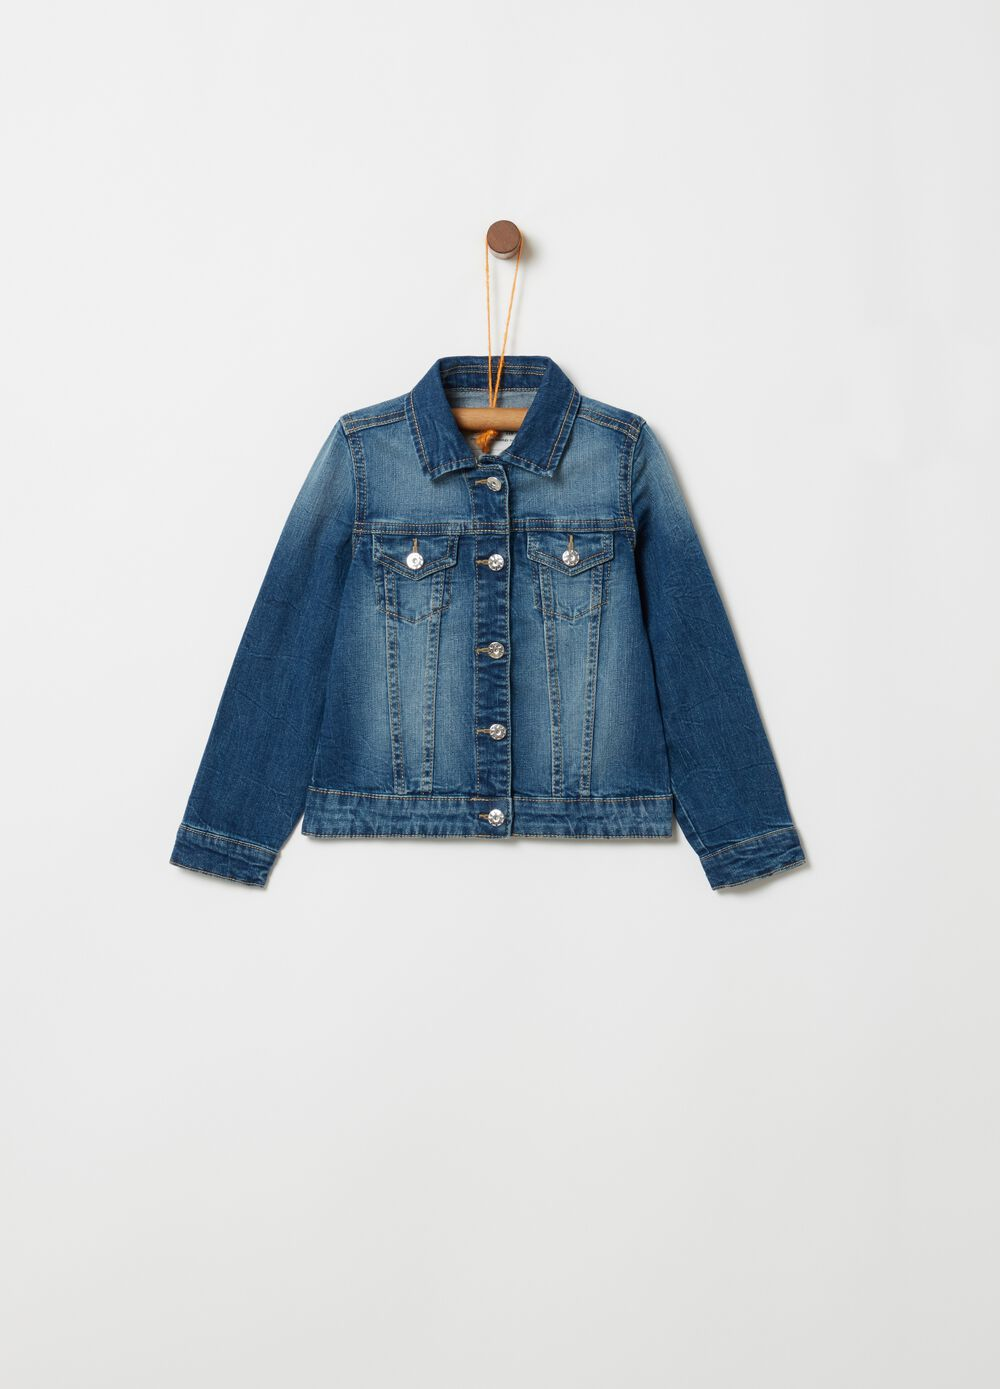 Denim jacket with sequins on the back